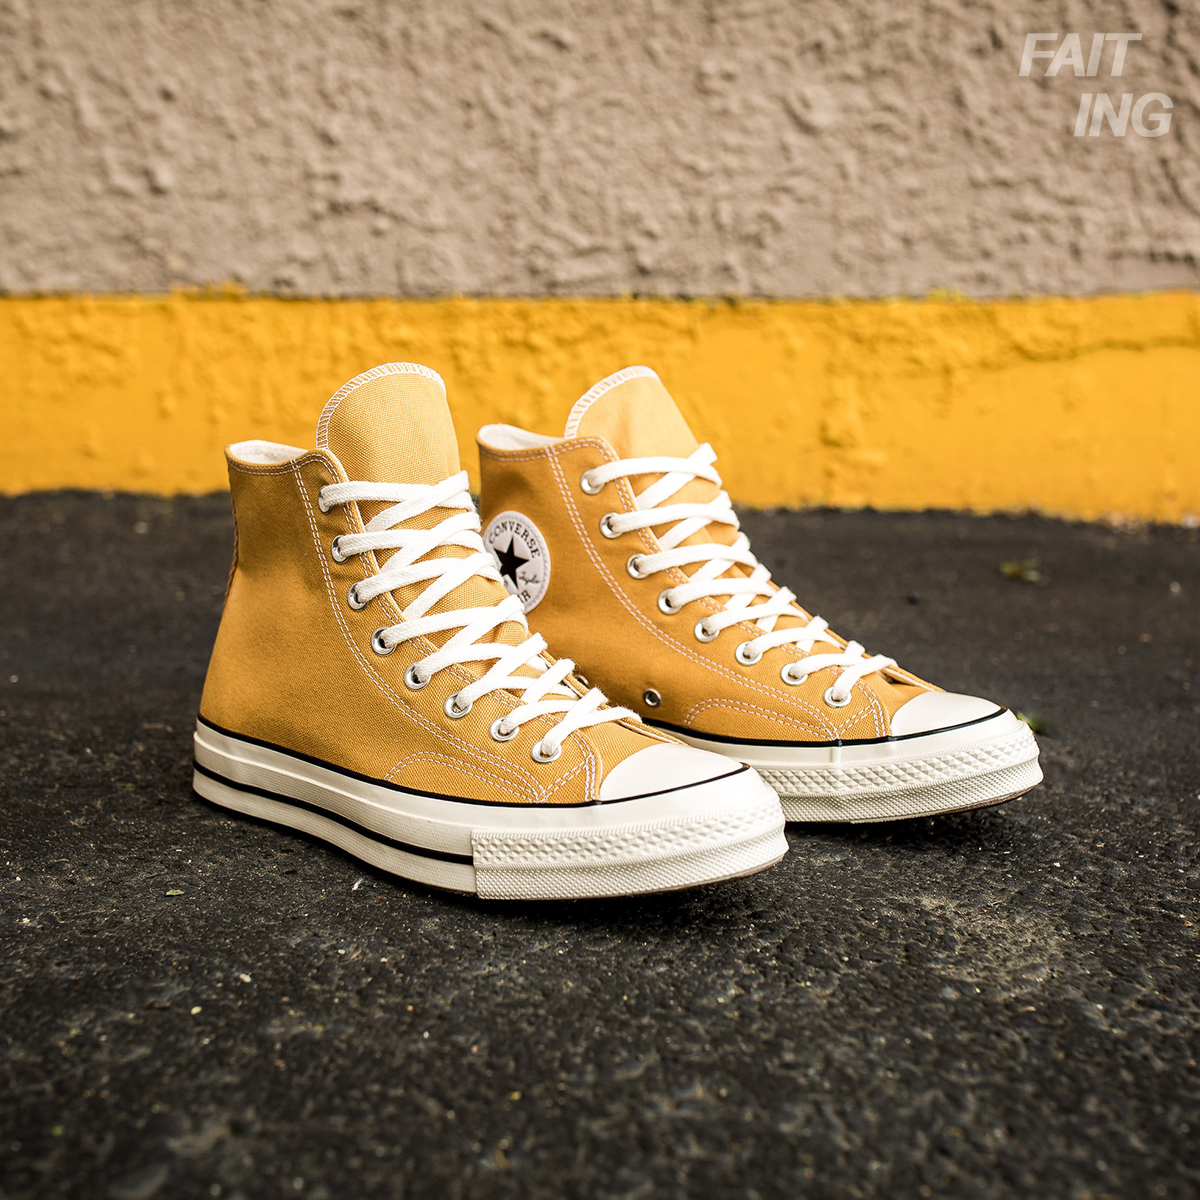 b779716dbf3a Converse 1970s yellow high and low classic men and women canvas shoes  Samsung standard 162054C